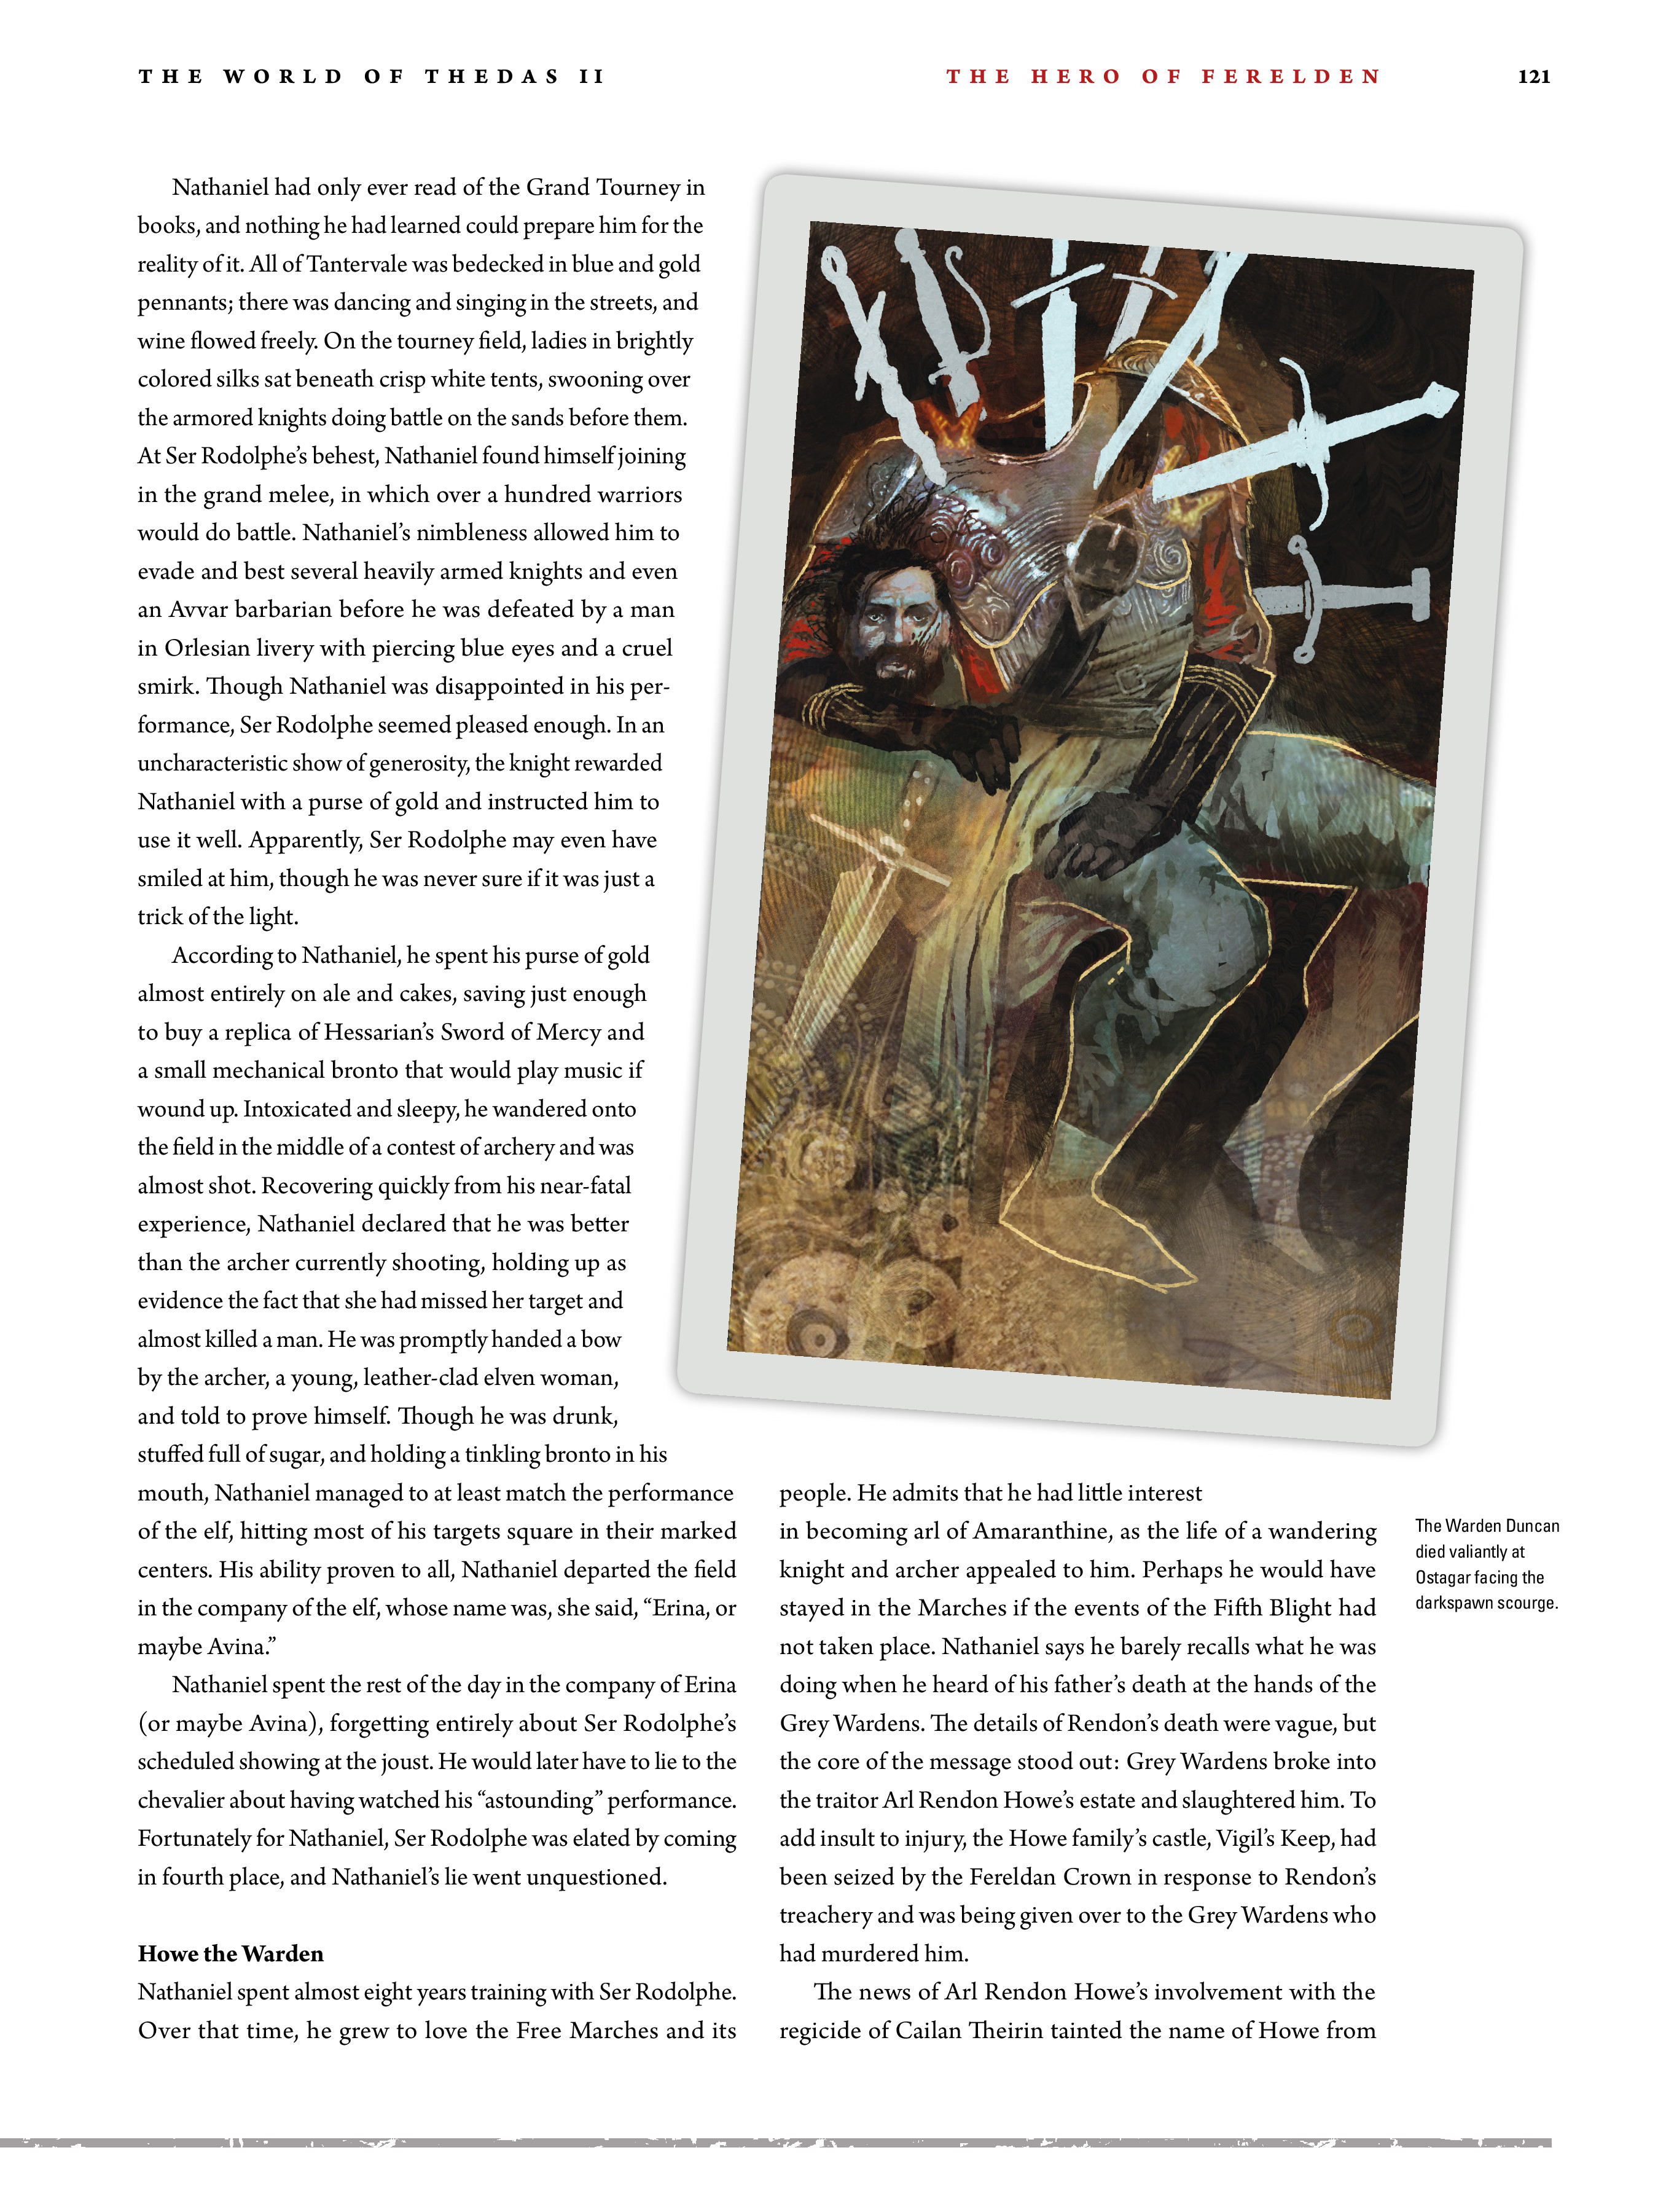 Read online Dragon Age: The World of Thedas comic -  Issue # TPB 2 - 117